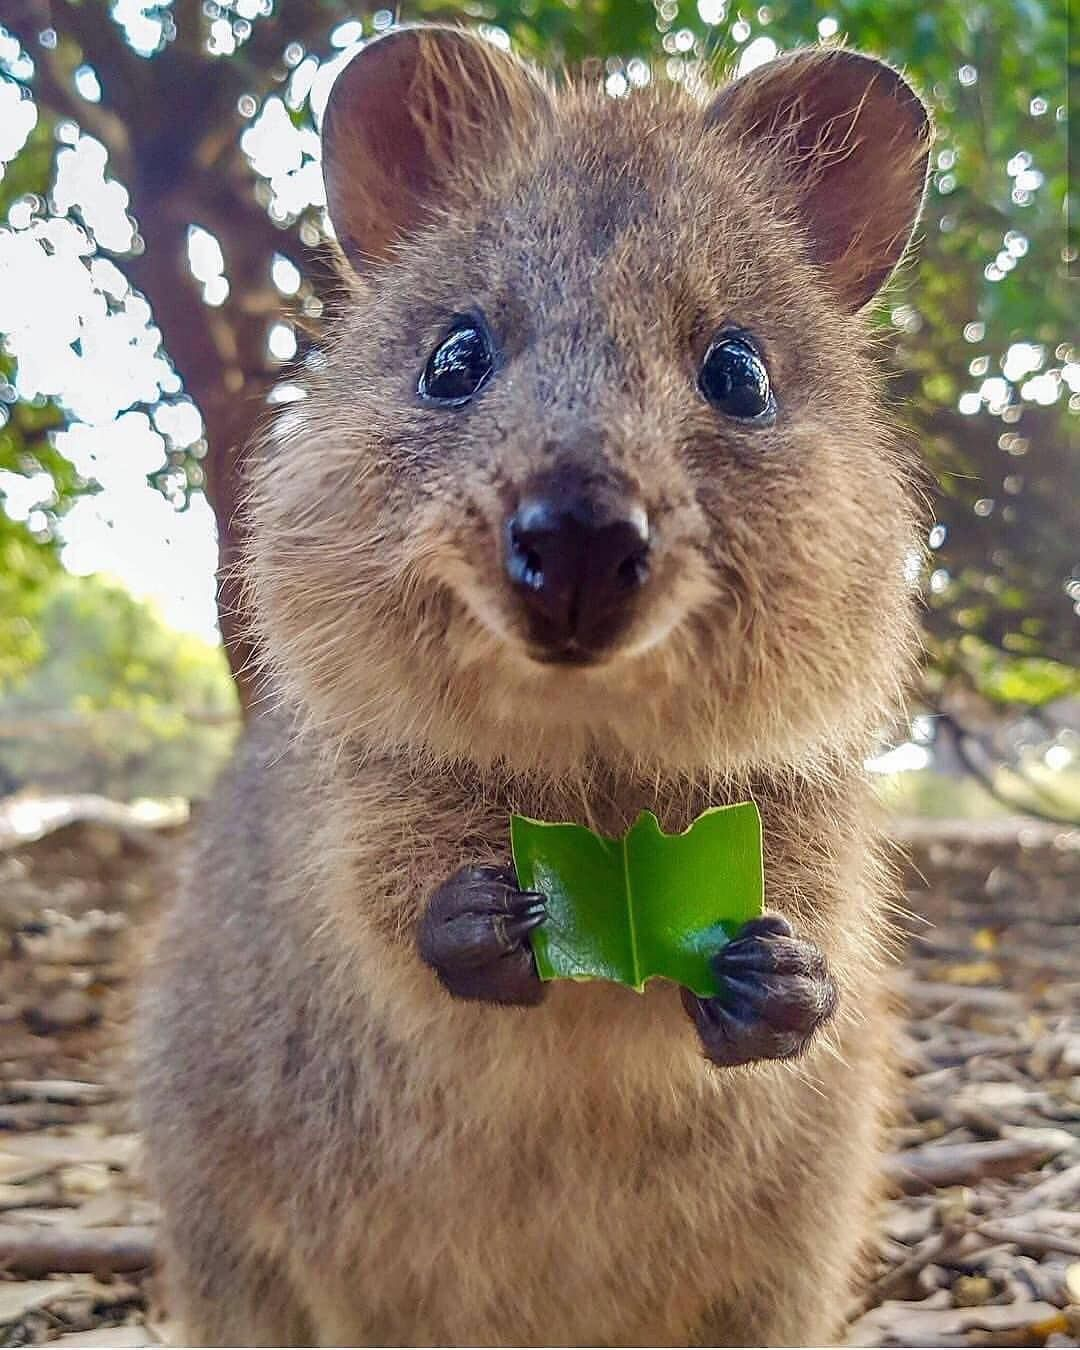 Nature Wildlife Adventure さんはinstagramを利用しています This Is The Australian Quokka The Happiest Animal On Earth Cute Animals Cute Baby Animals Quokka Animal